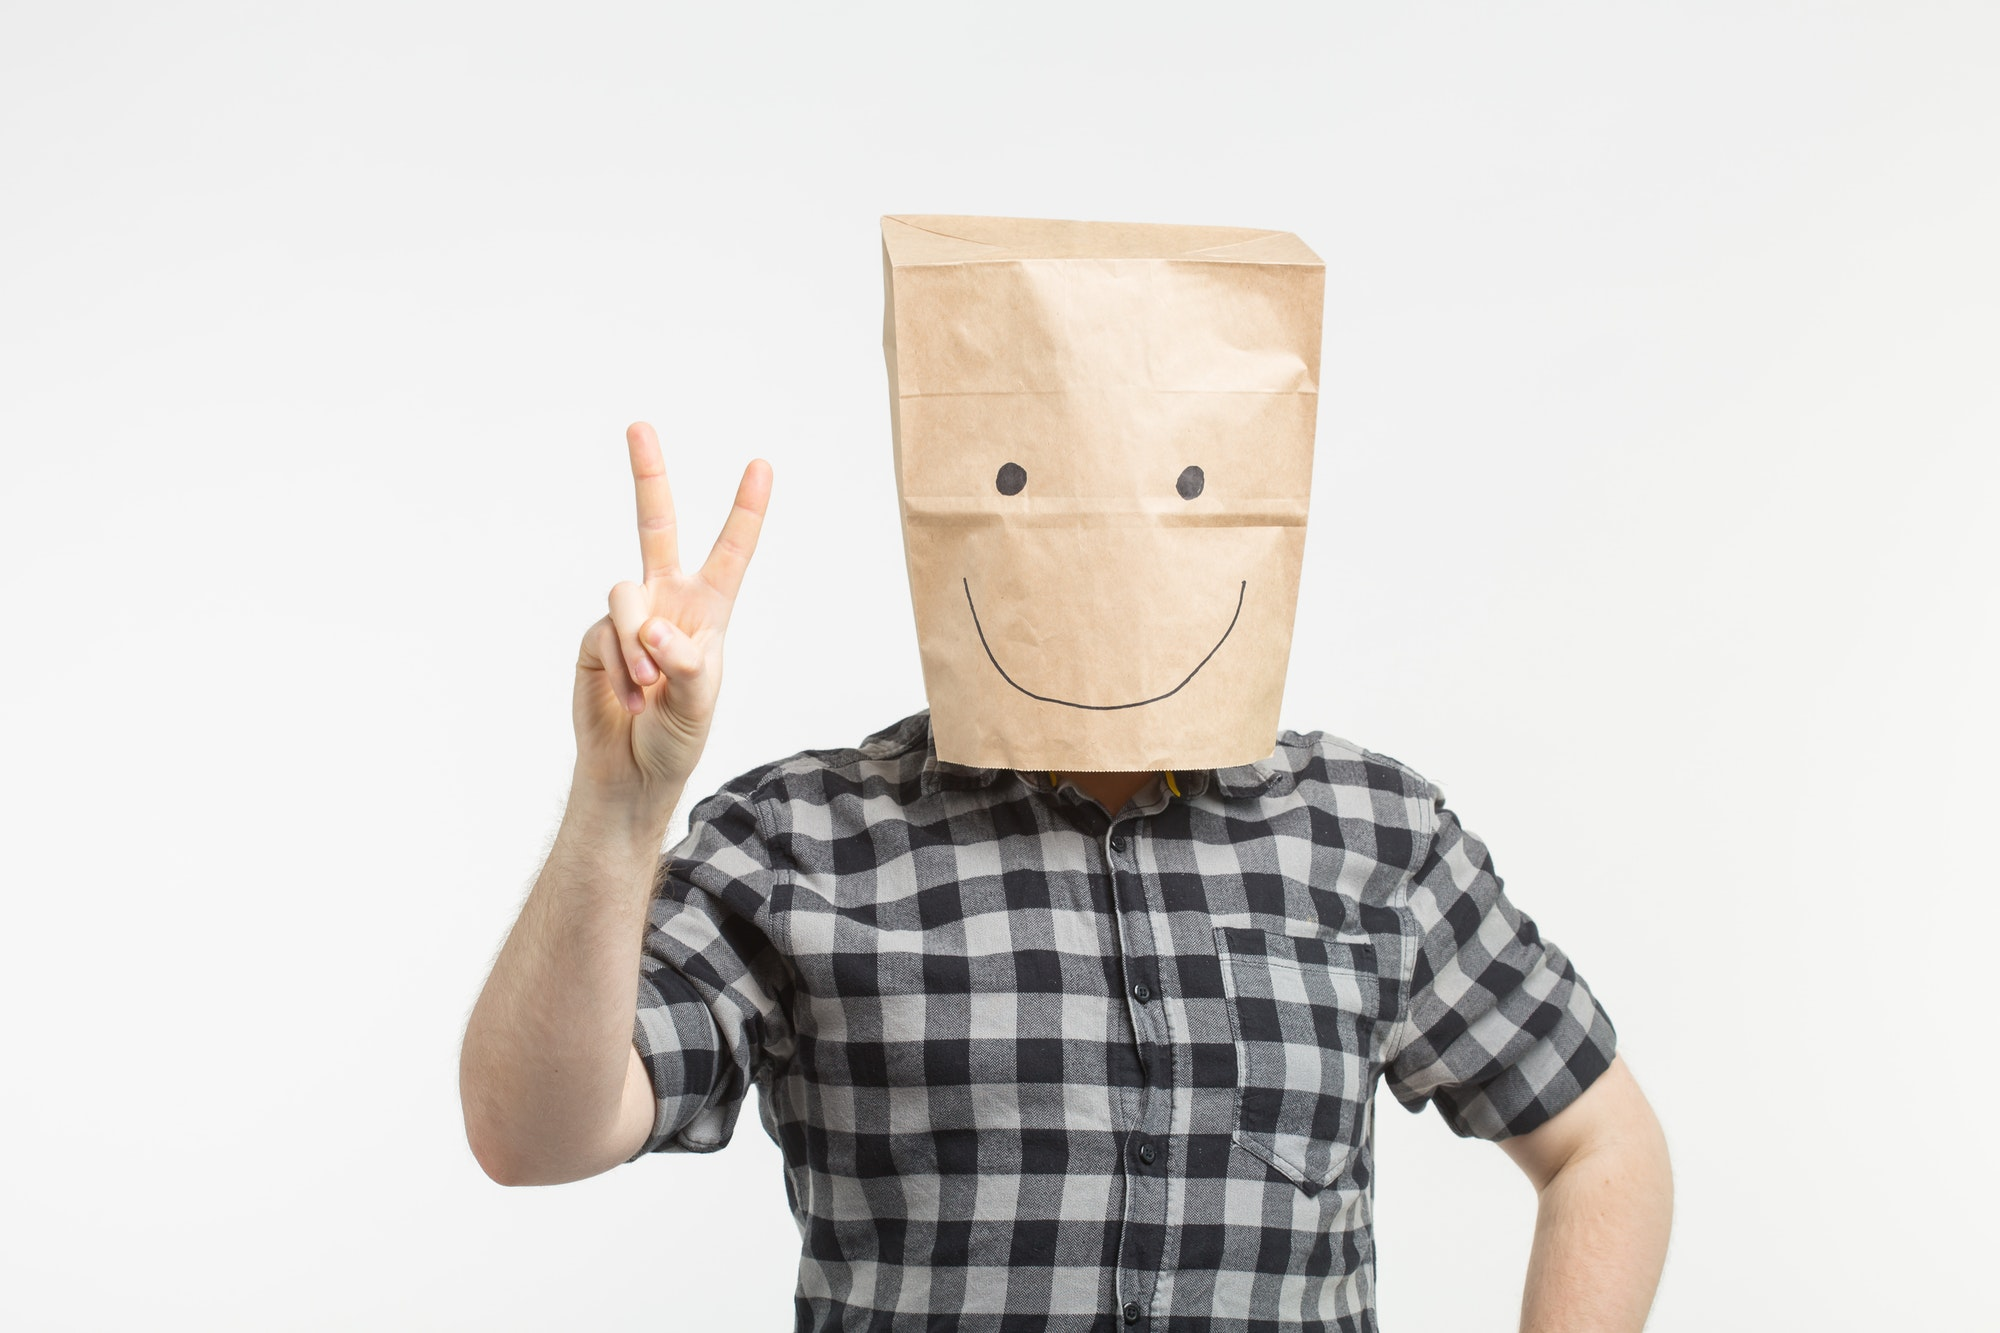 men in paper bag mask hiding identity